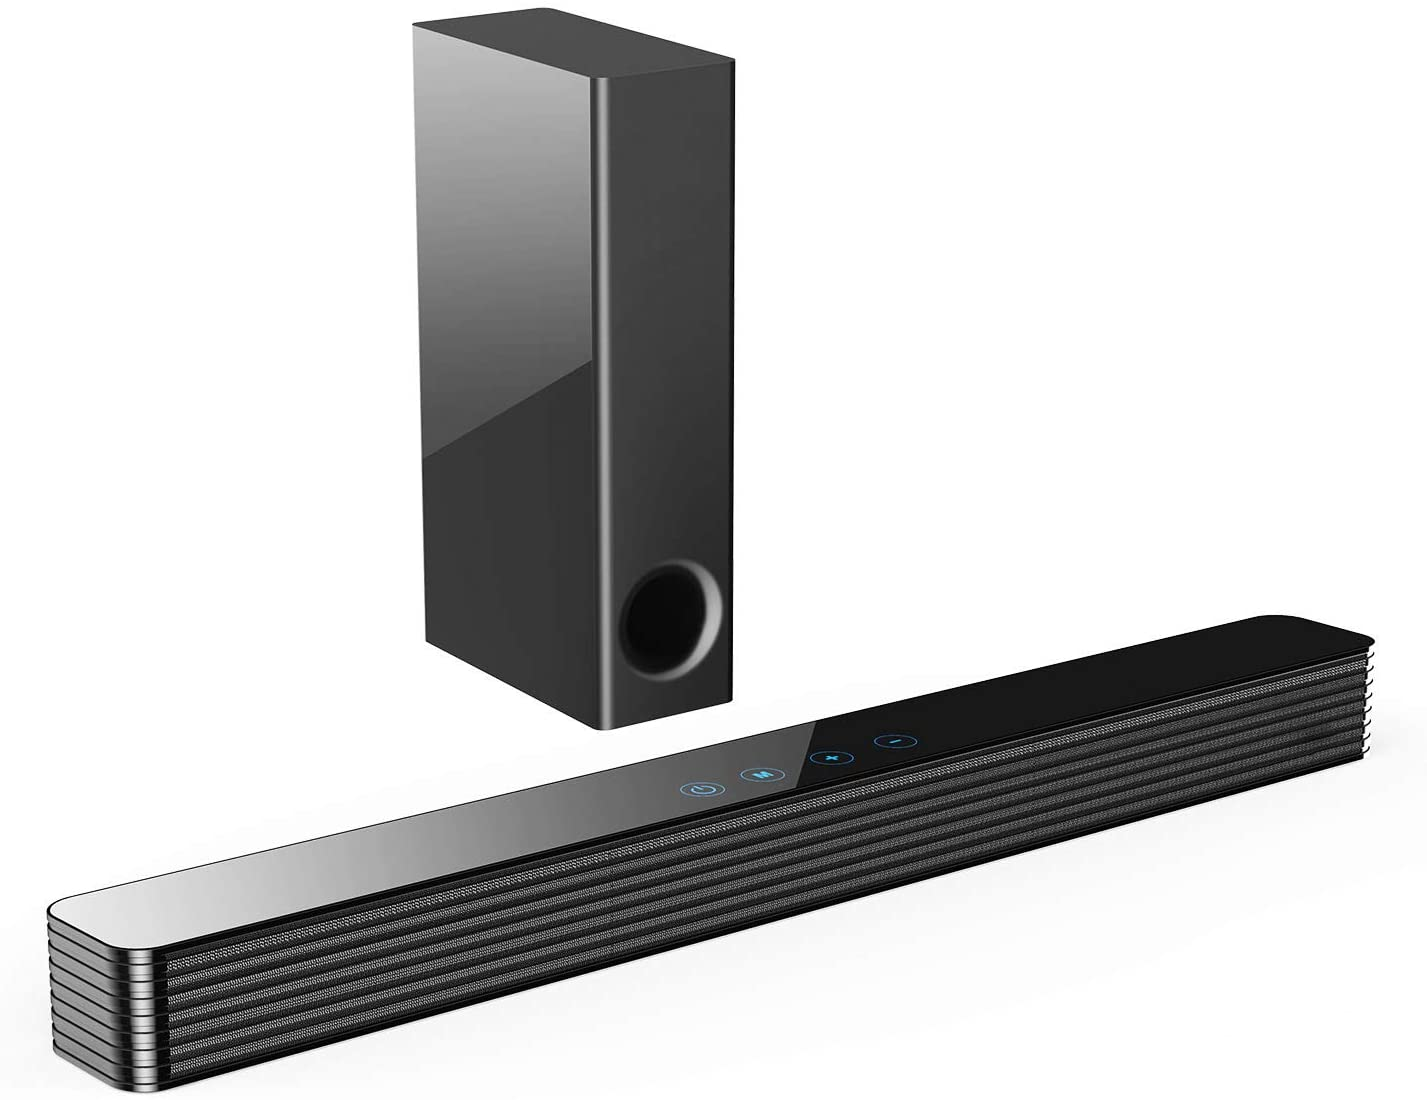 Norcent KB2020 Black Mamba Series 25-Inch Sound Bar with Sub-woofer, Wired and Wireless Bluetooth 5.0 Extra Powerful Bass Speaker Soundbar 2020 New Version MB-2521